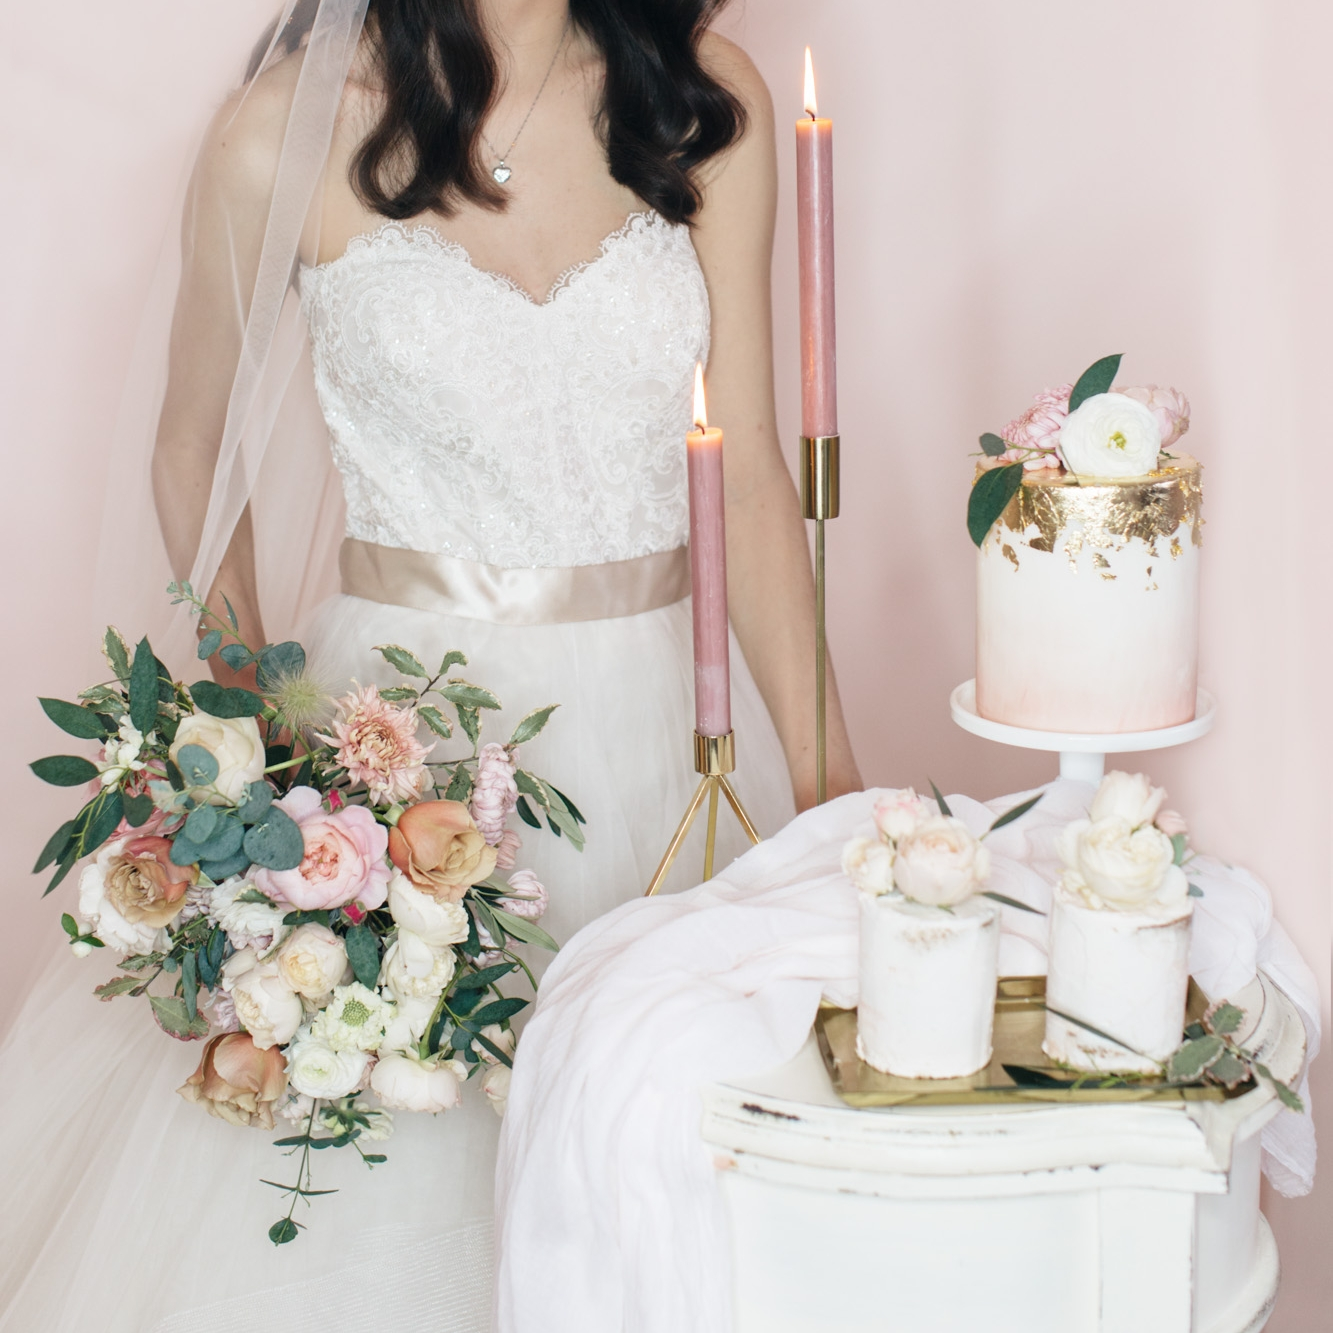 SUMMER BLUSH  Blush tones on a verity of designs on traditional iced cakes.